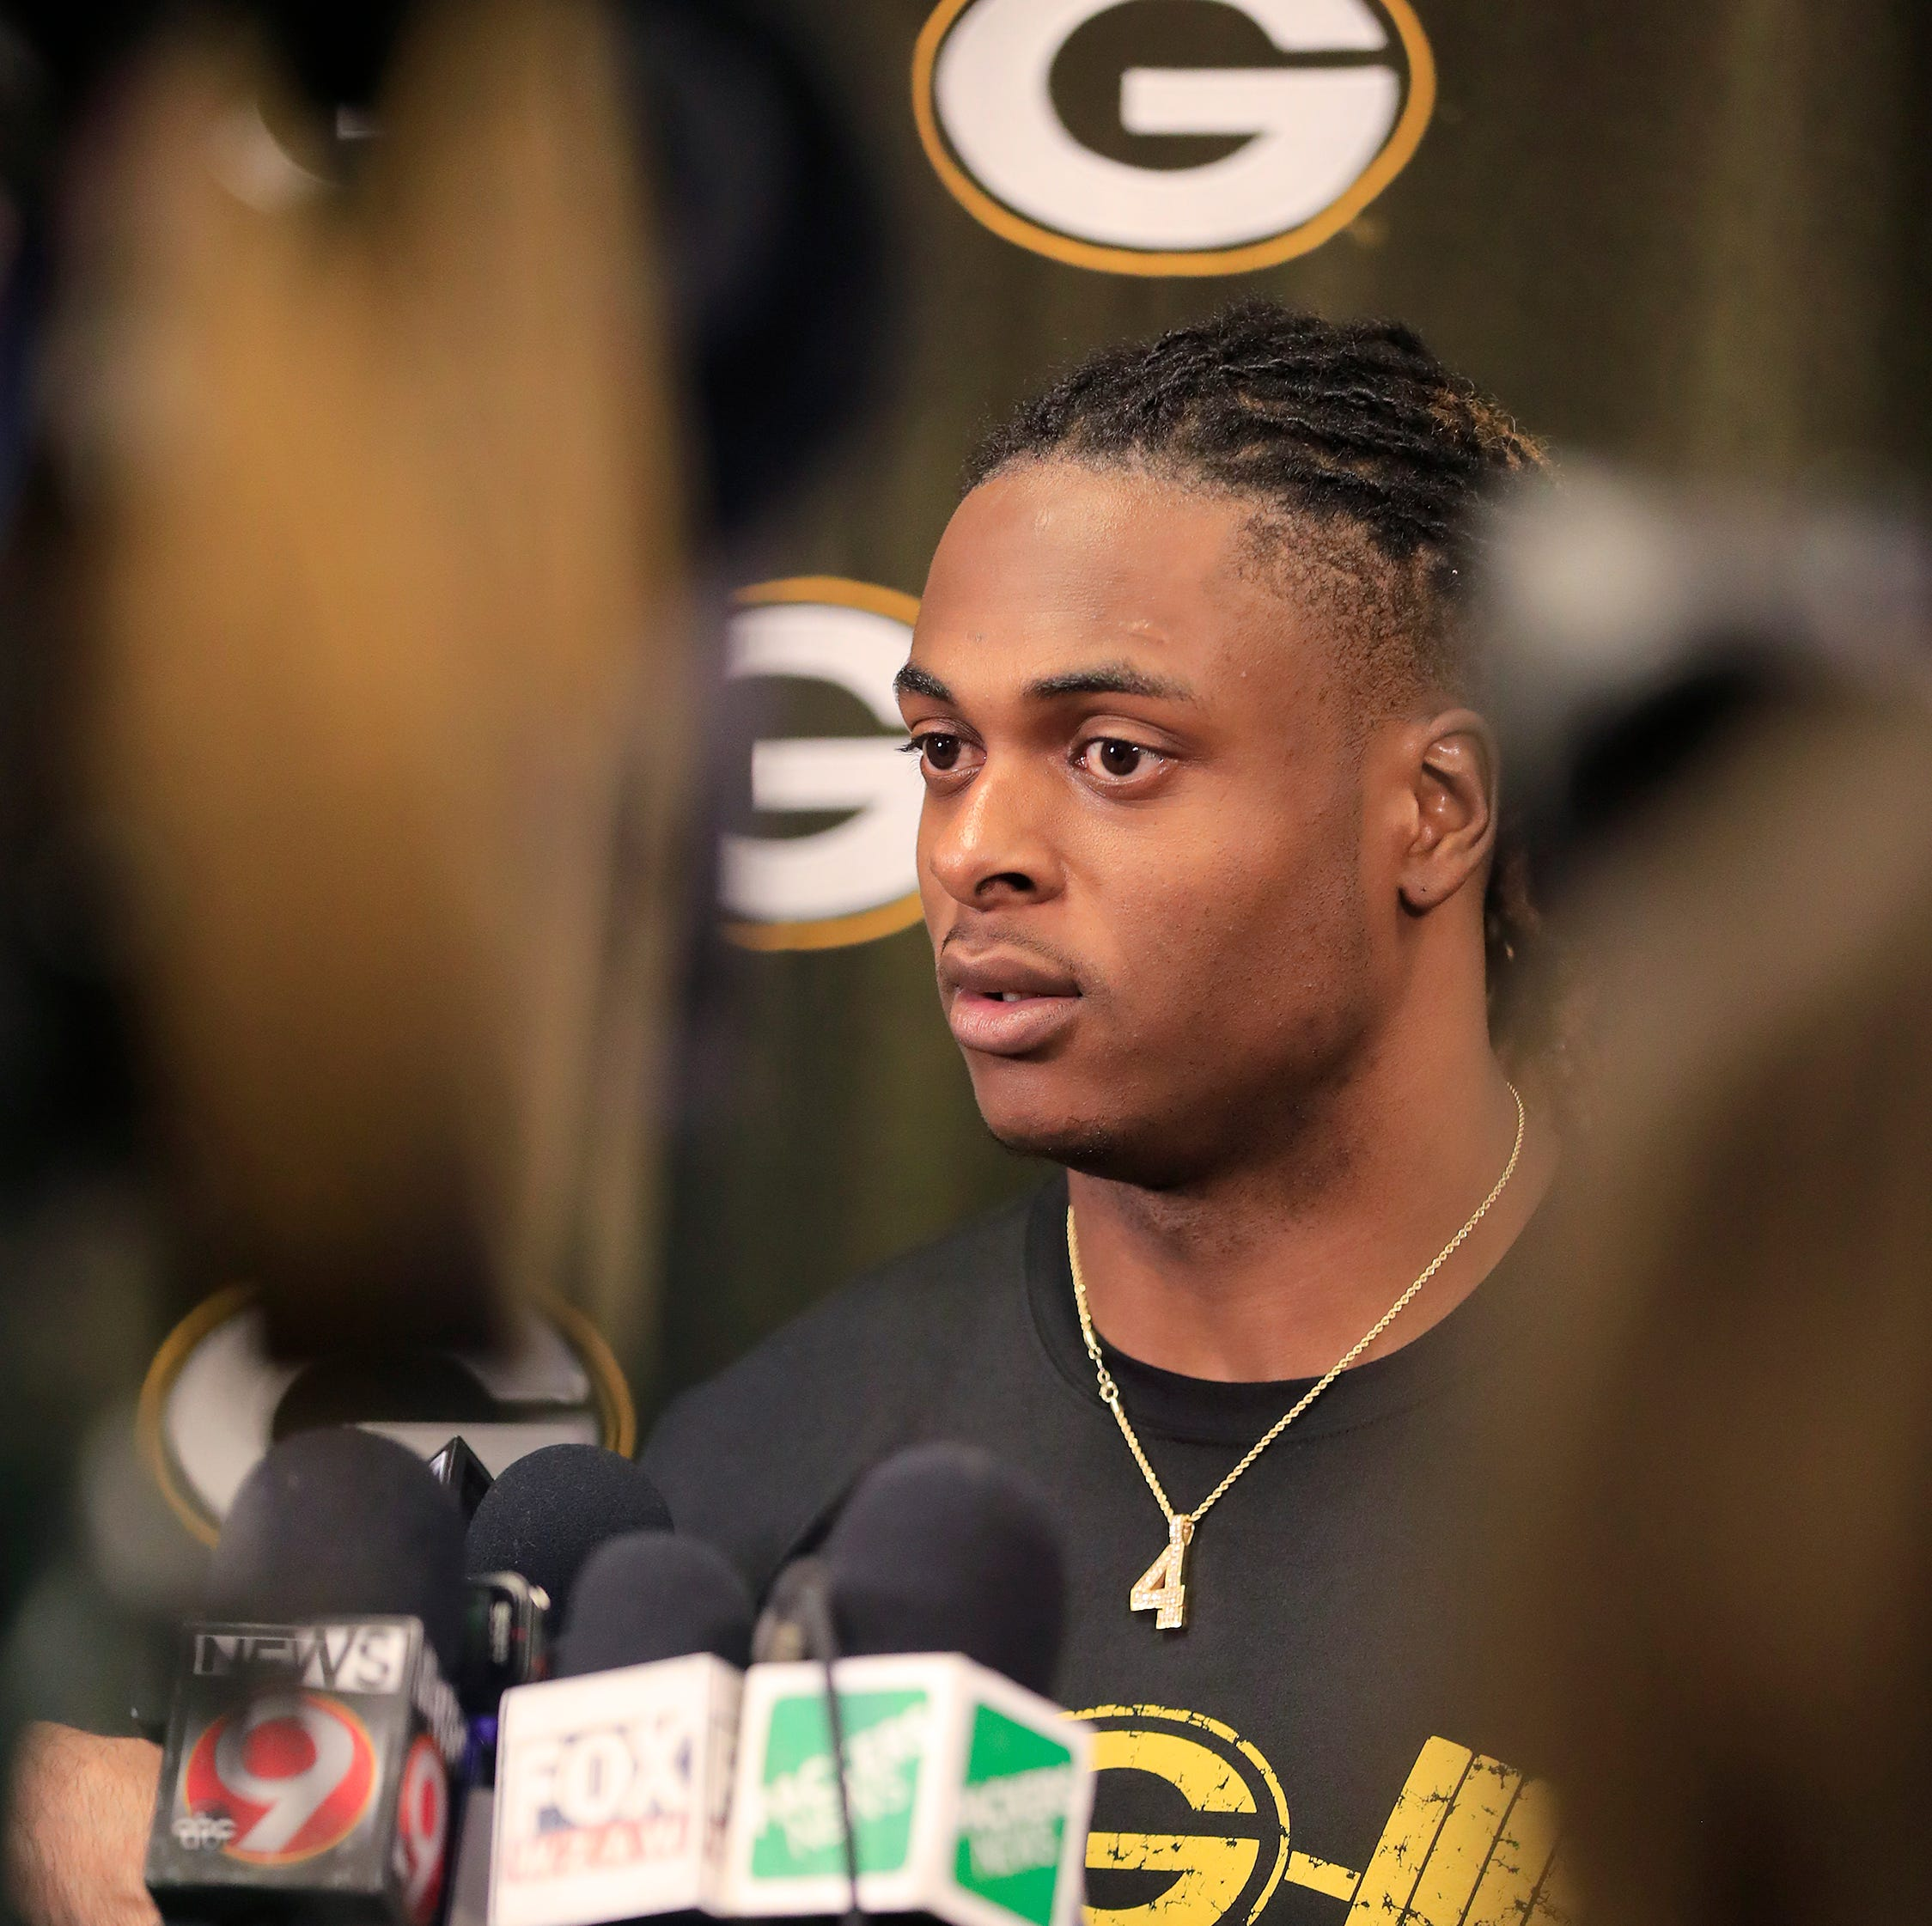 Packers notes: Davante Adams eager to create mismatches in slot